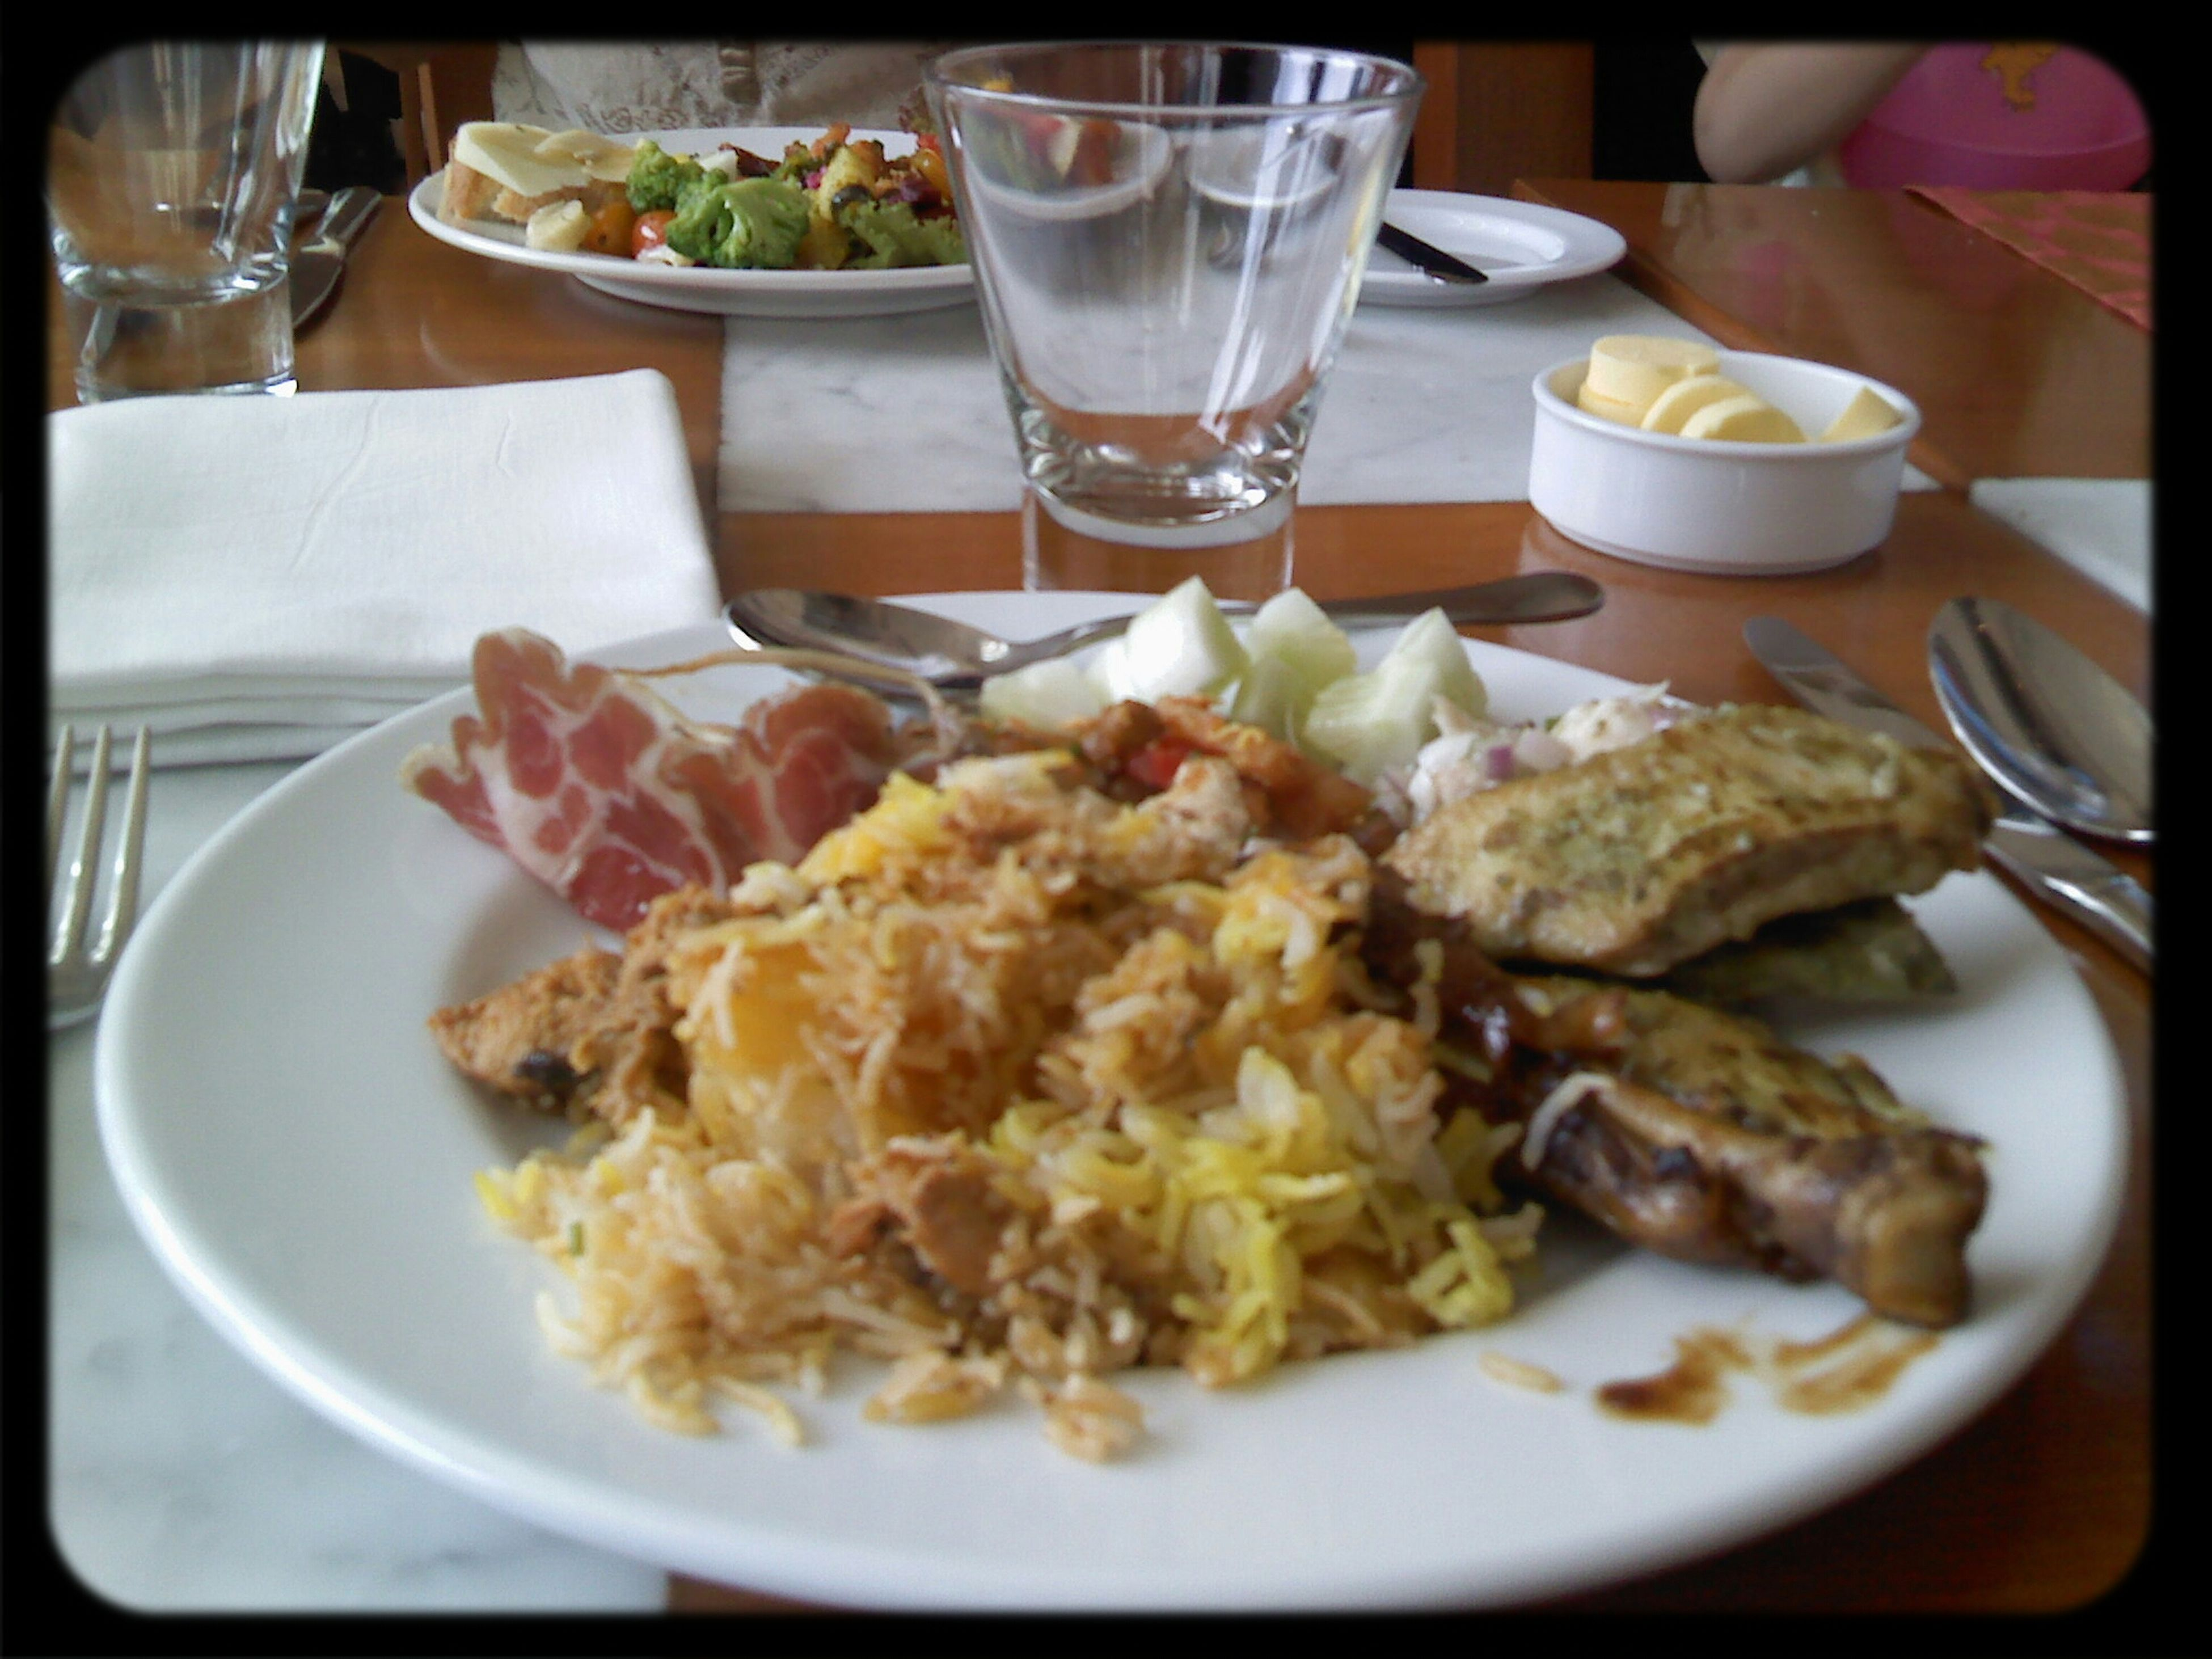 food and drink, indoors, table, plate, food, freshness, ready-to-eat, drink, meal, serving size, still life, drinking glass, healthy eating, close-up, served, restaurant, refreshment, fork, no people, salad